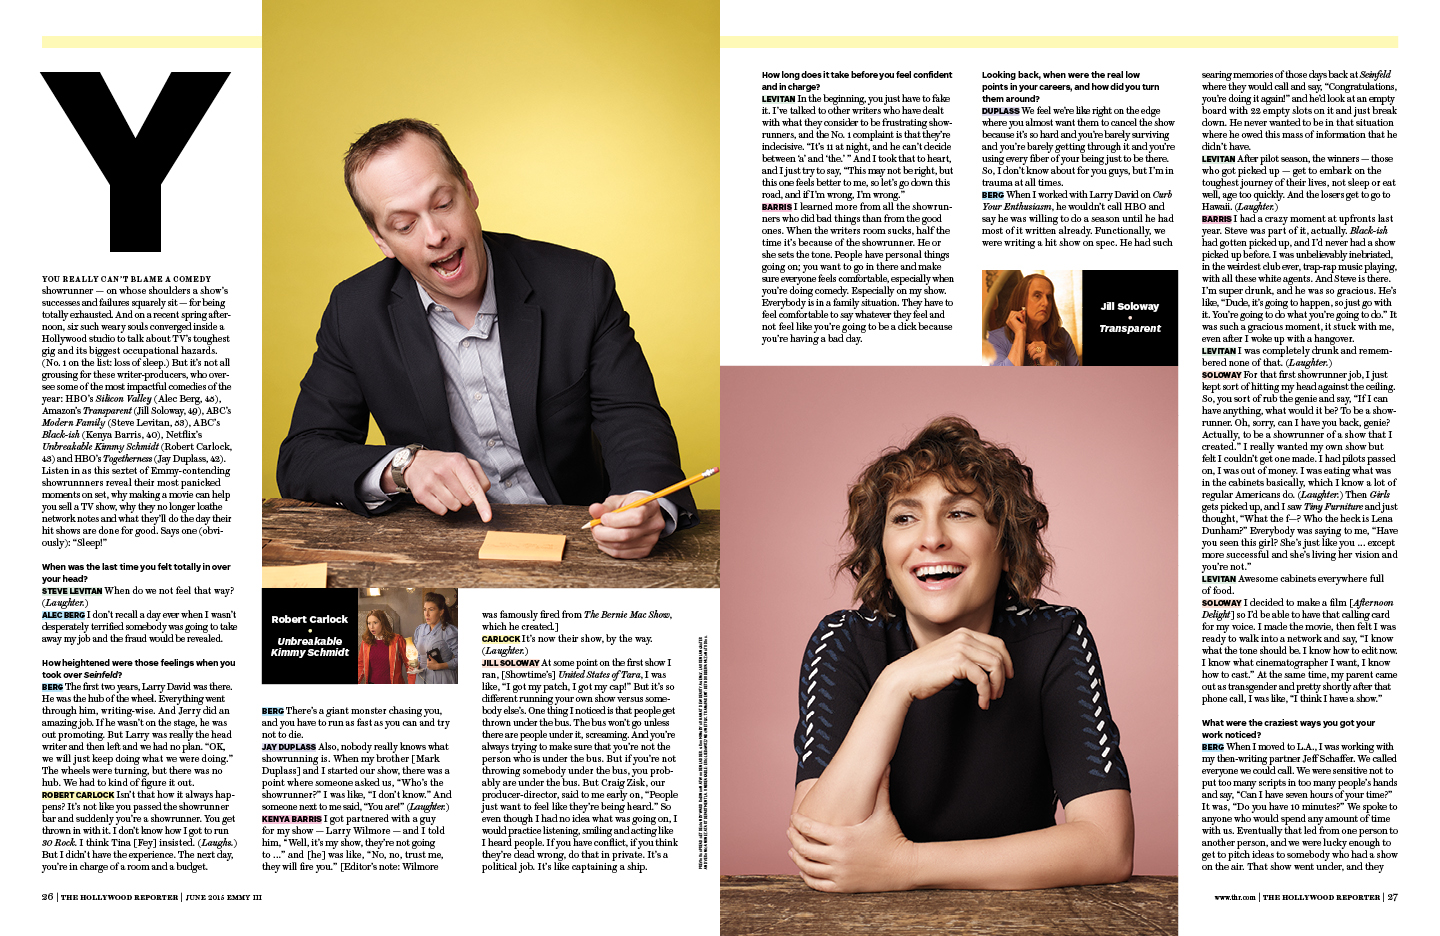 Comedy Writer Roundtable / The Hollywood Reporter / 6.2015 / kelsey stefanson / art direction + graphic design / yeskelsey.com